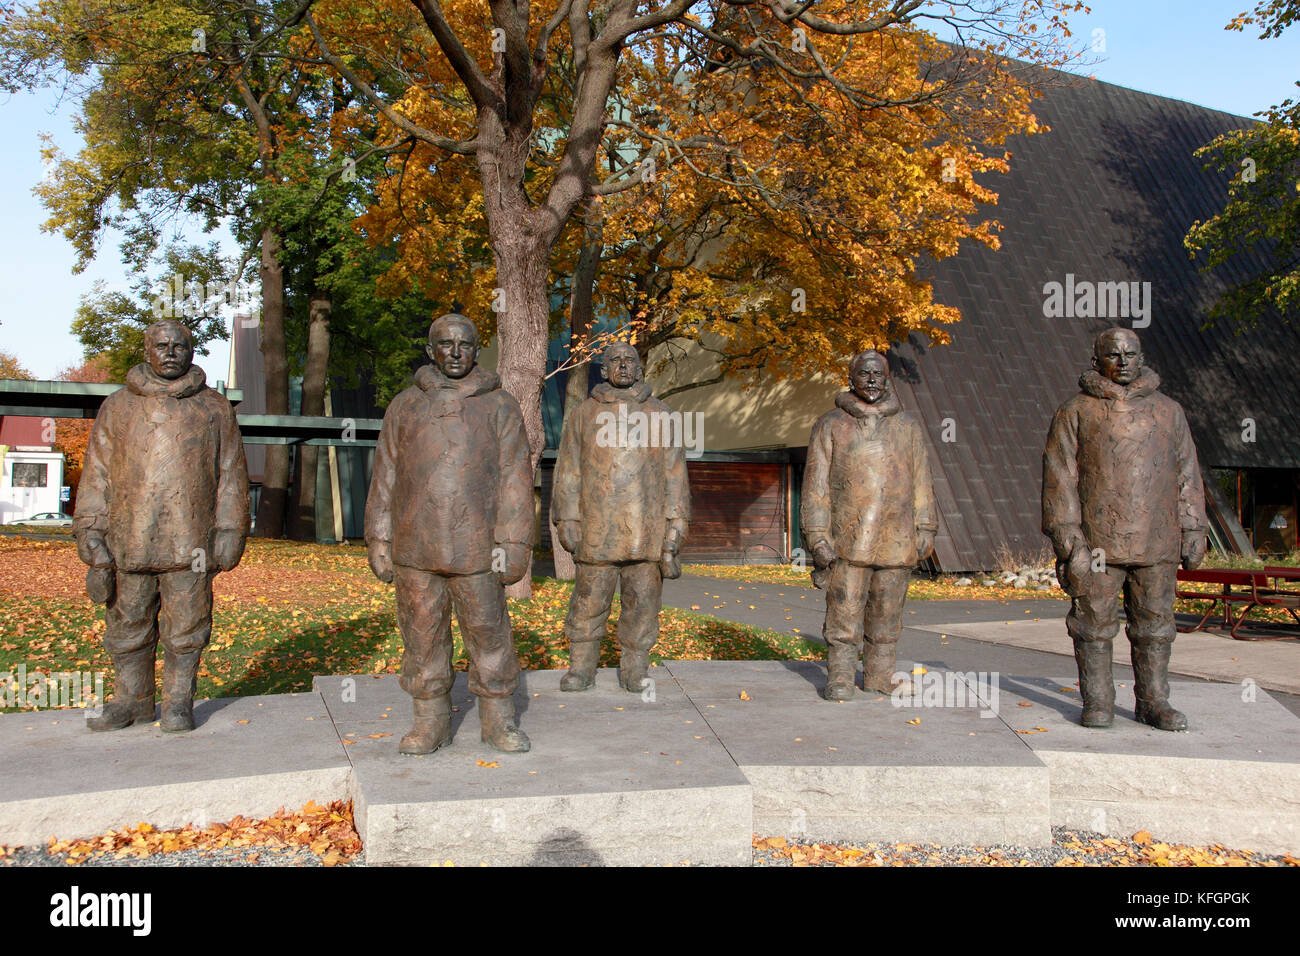 Statues at the Fram museum in Oslo, Norway to remember Roald Amundsen and his team, first to reach the South Pole - Stock Image